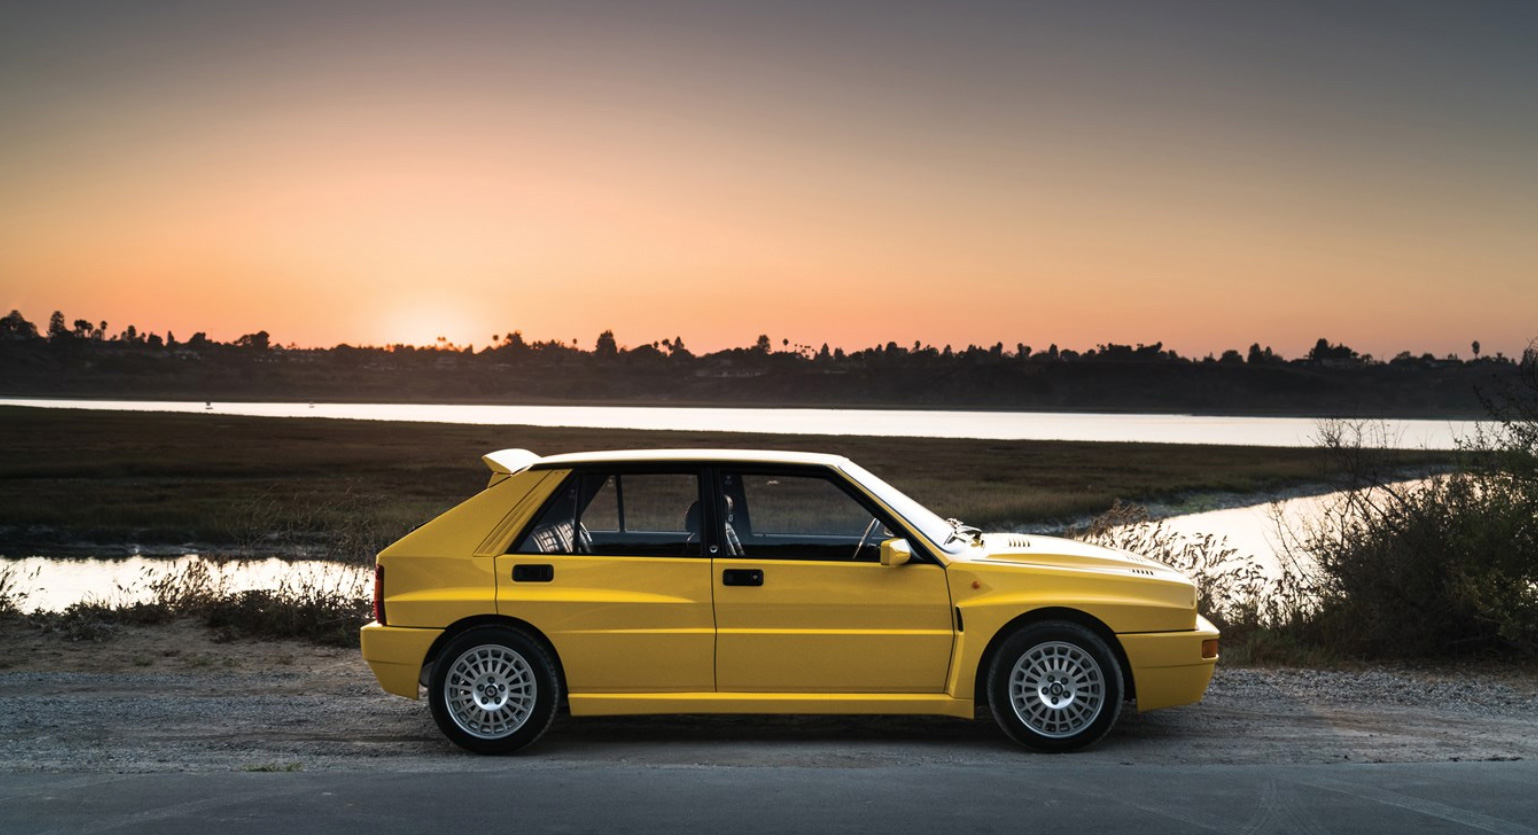 Race-Ready: The 1992 Lancia Delta HF Integrale Evoluzione